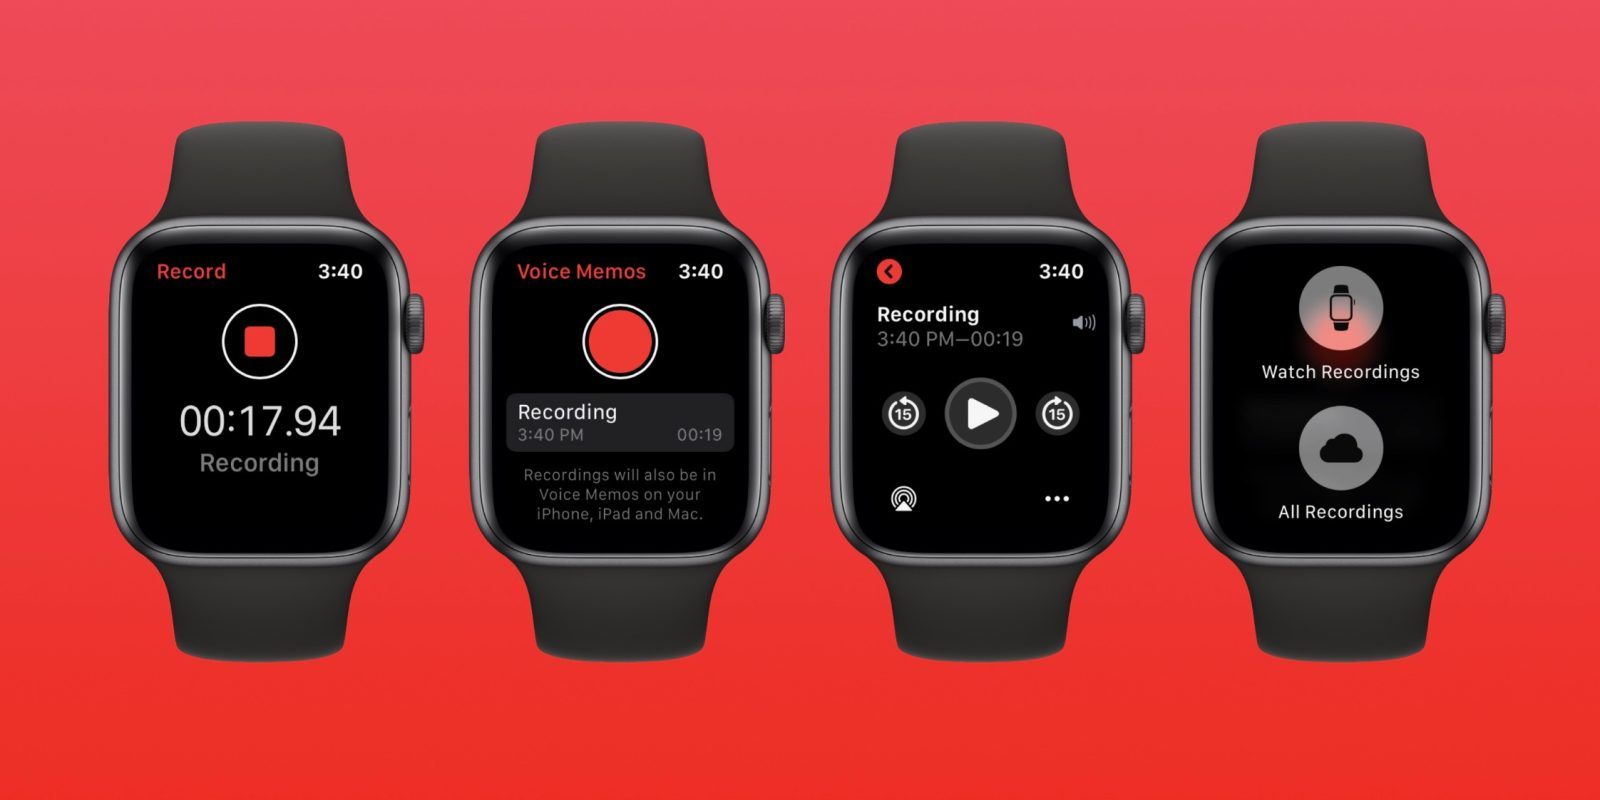 watchOS 6: How to record Voice Memos on Apple Watch - 9to5Mac